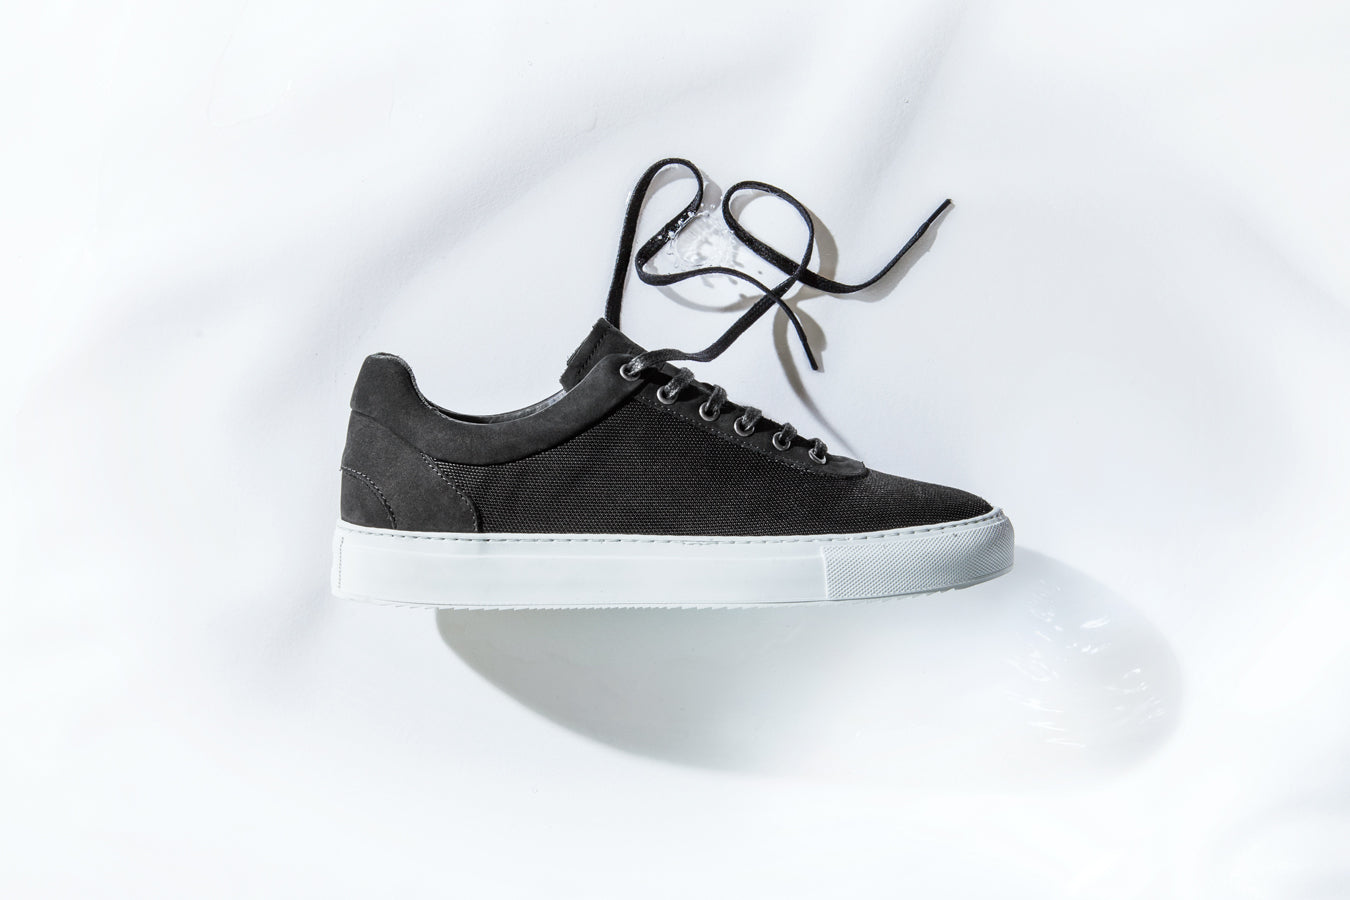 weatherproof sneaker no-1, black